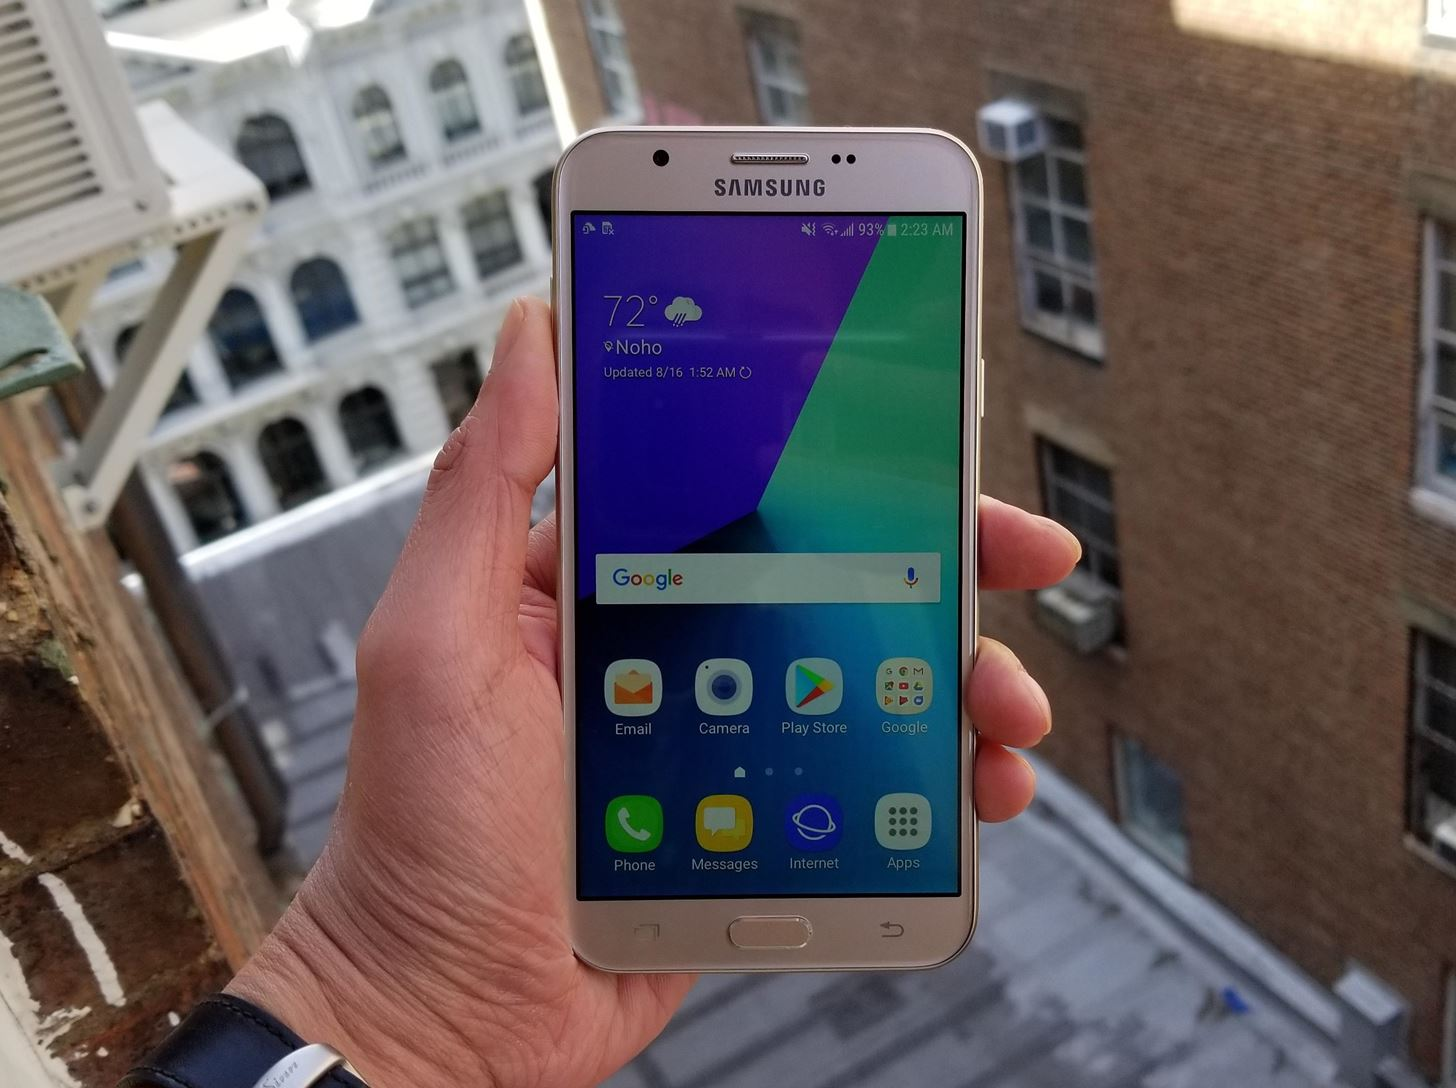 Cheap Phones Ranked: The 4 Most Durable Budget Phones for Clumsy People